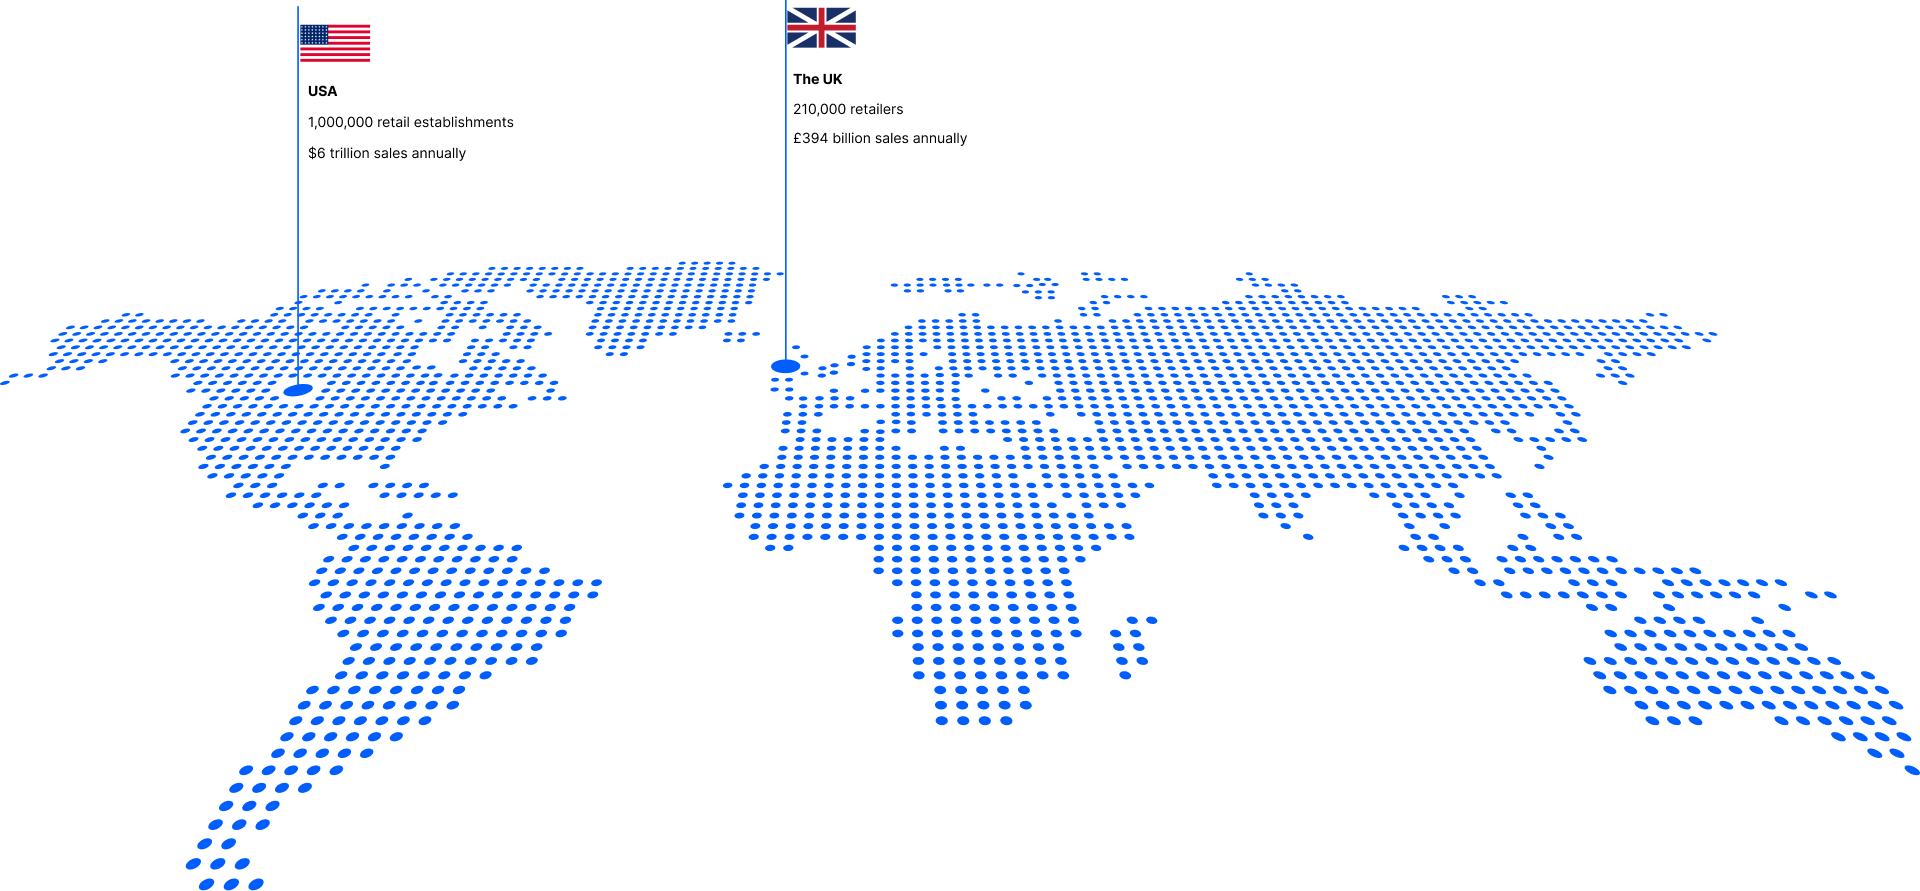 Number of retailers in the US and the UK